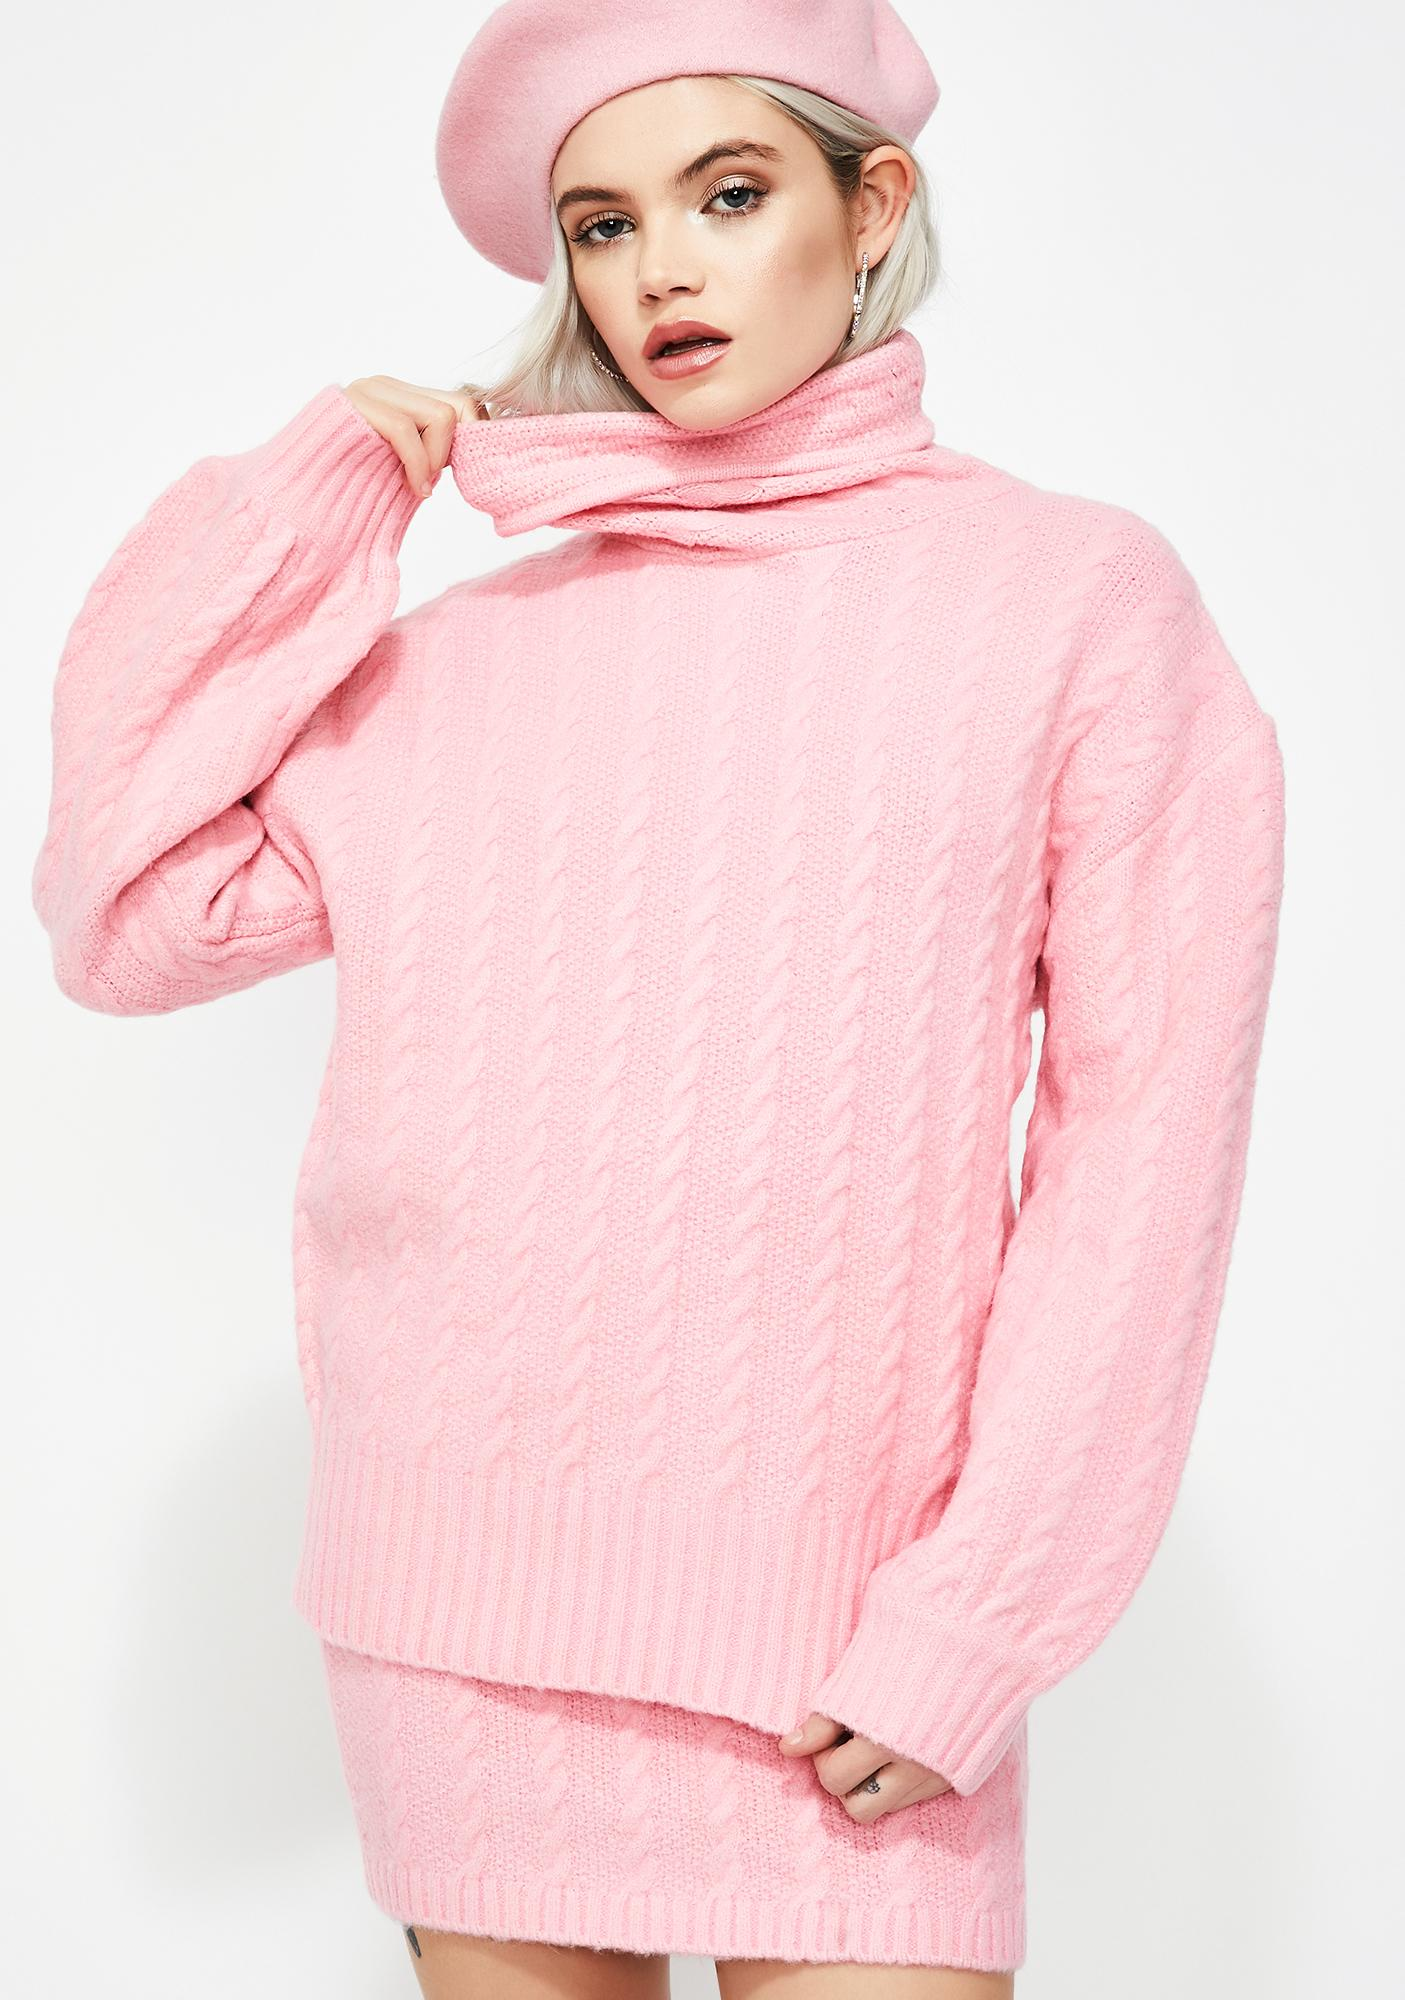 789fe71fbd Oversize Cable Knit Turtleneck Sweater